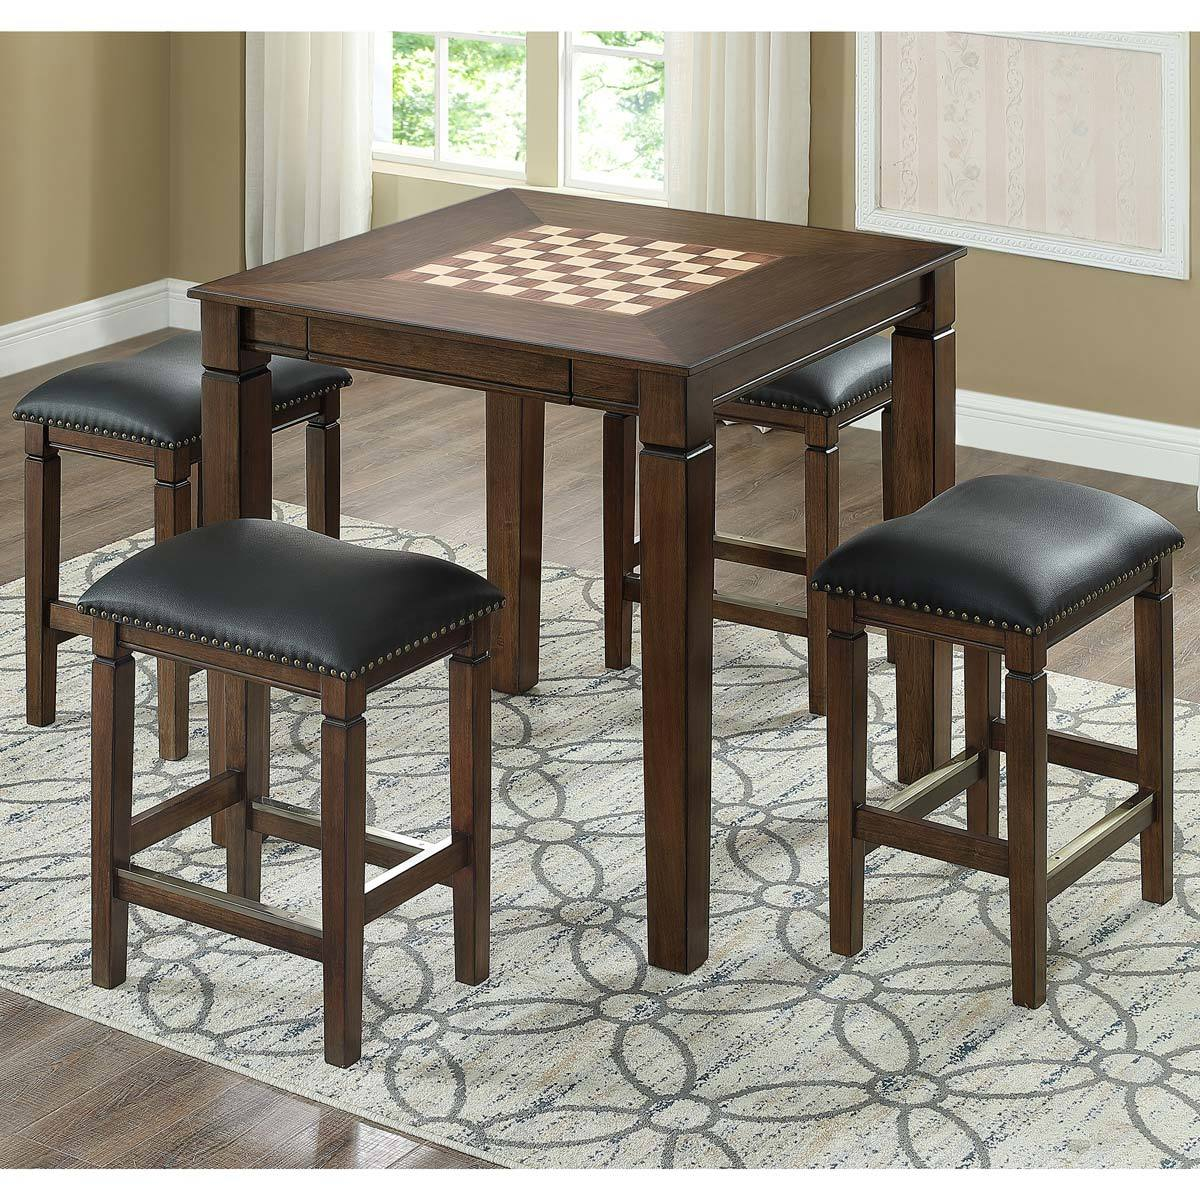 Well Universal Game Top Table With 4 Stools Game Accessories Costco Uk